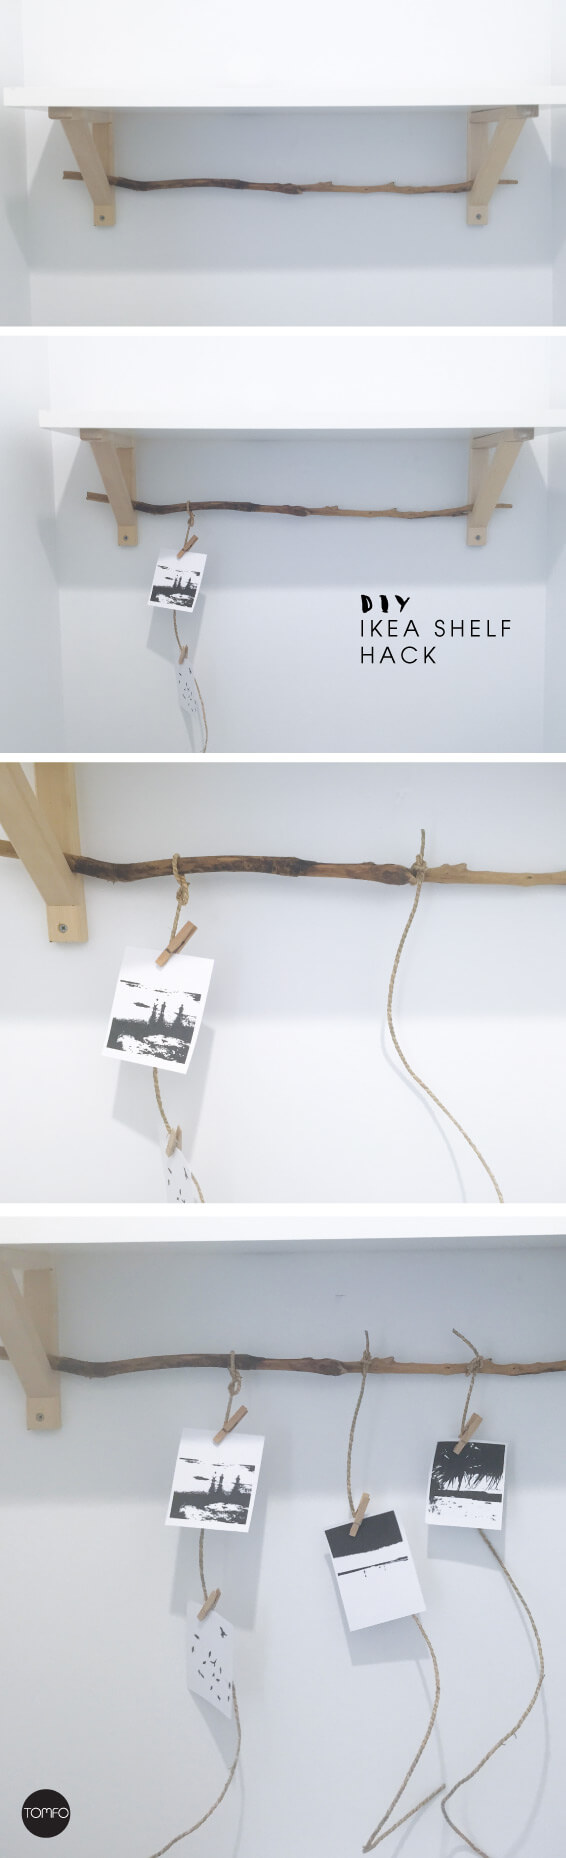 TOMFO-Diy-Ikea-shelf-hackTUTORIAL